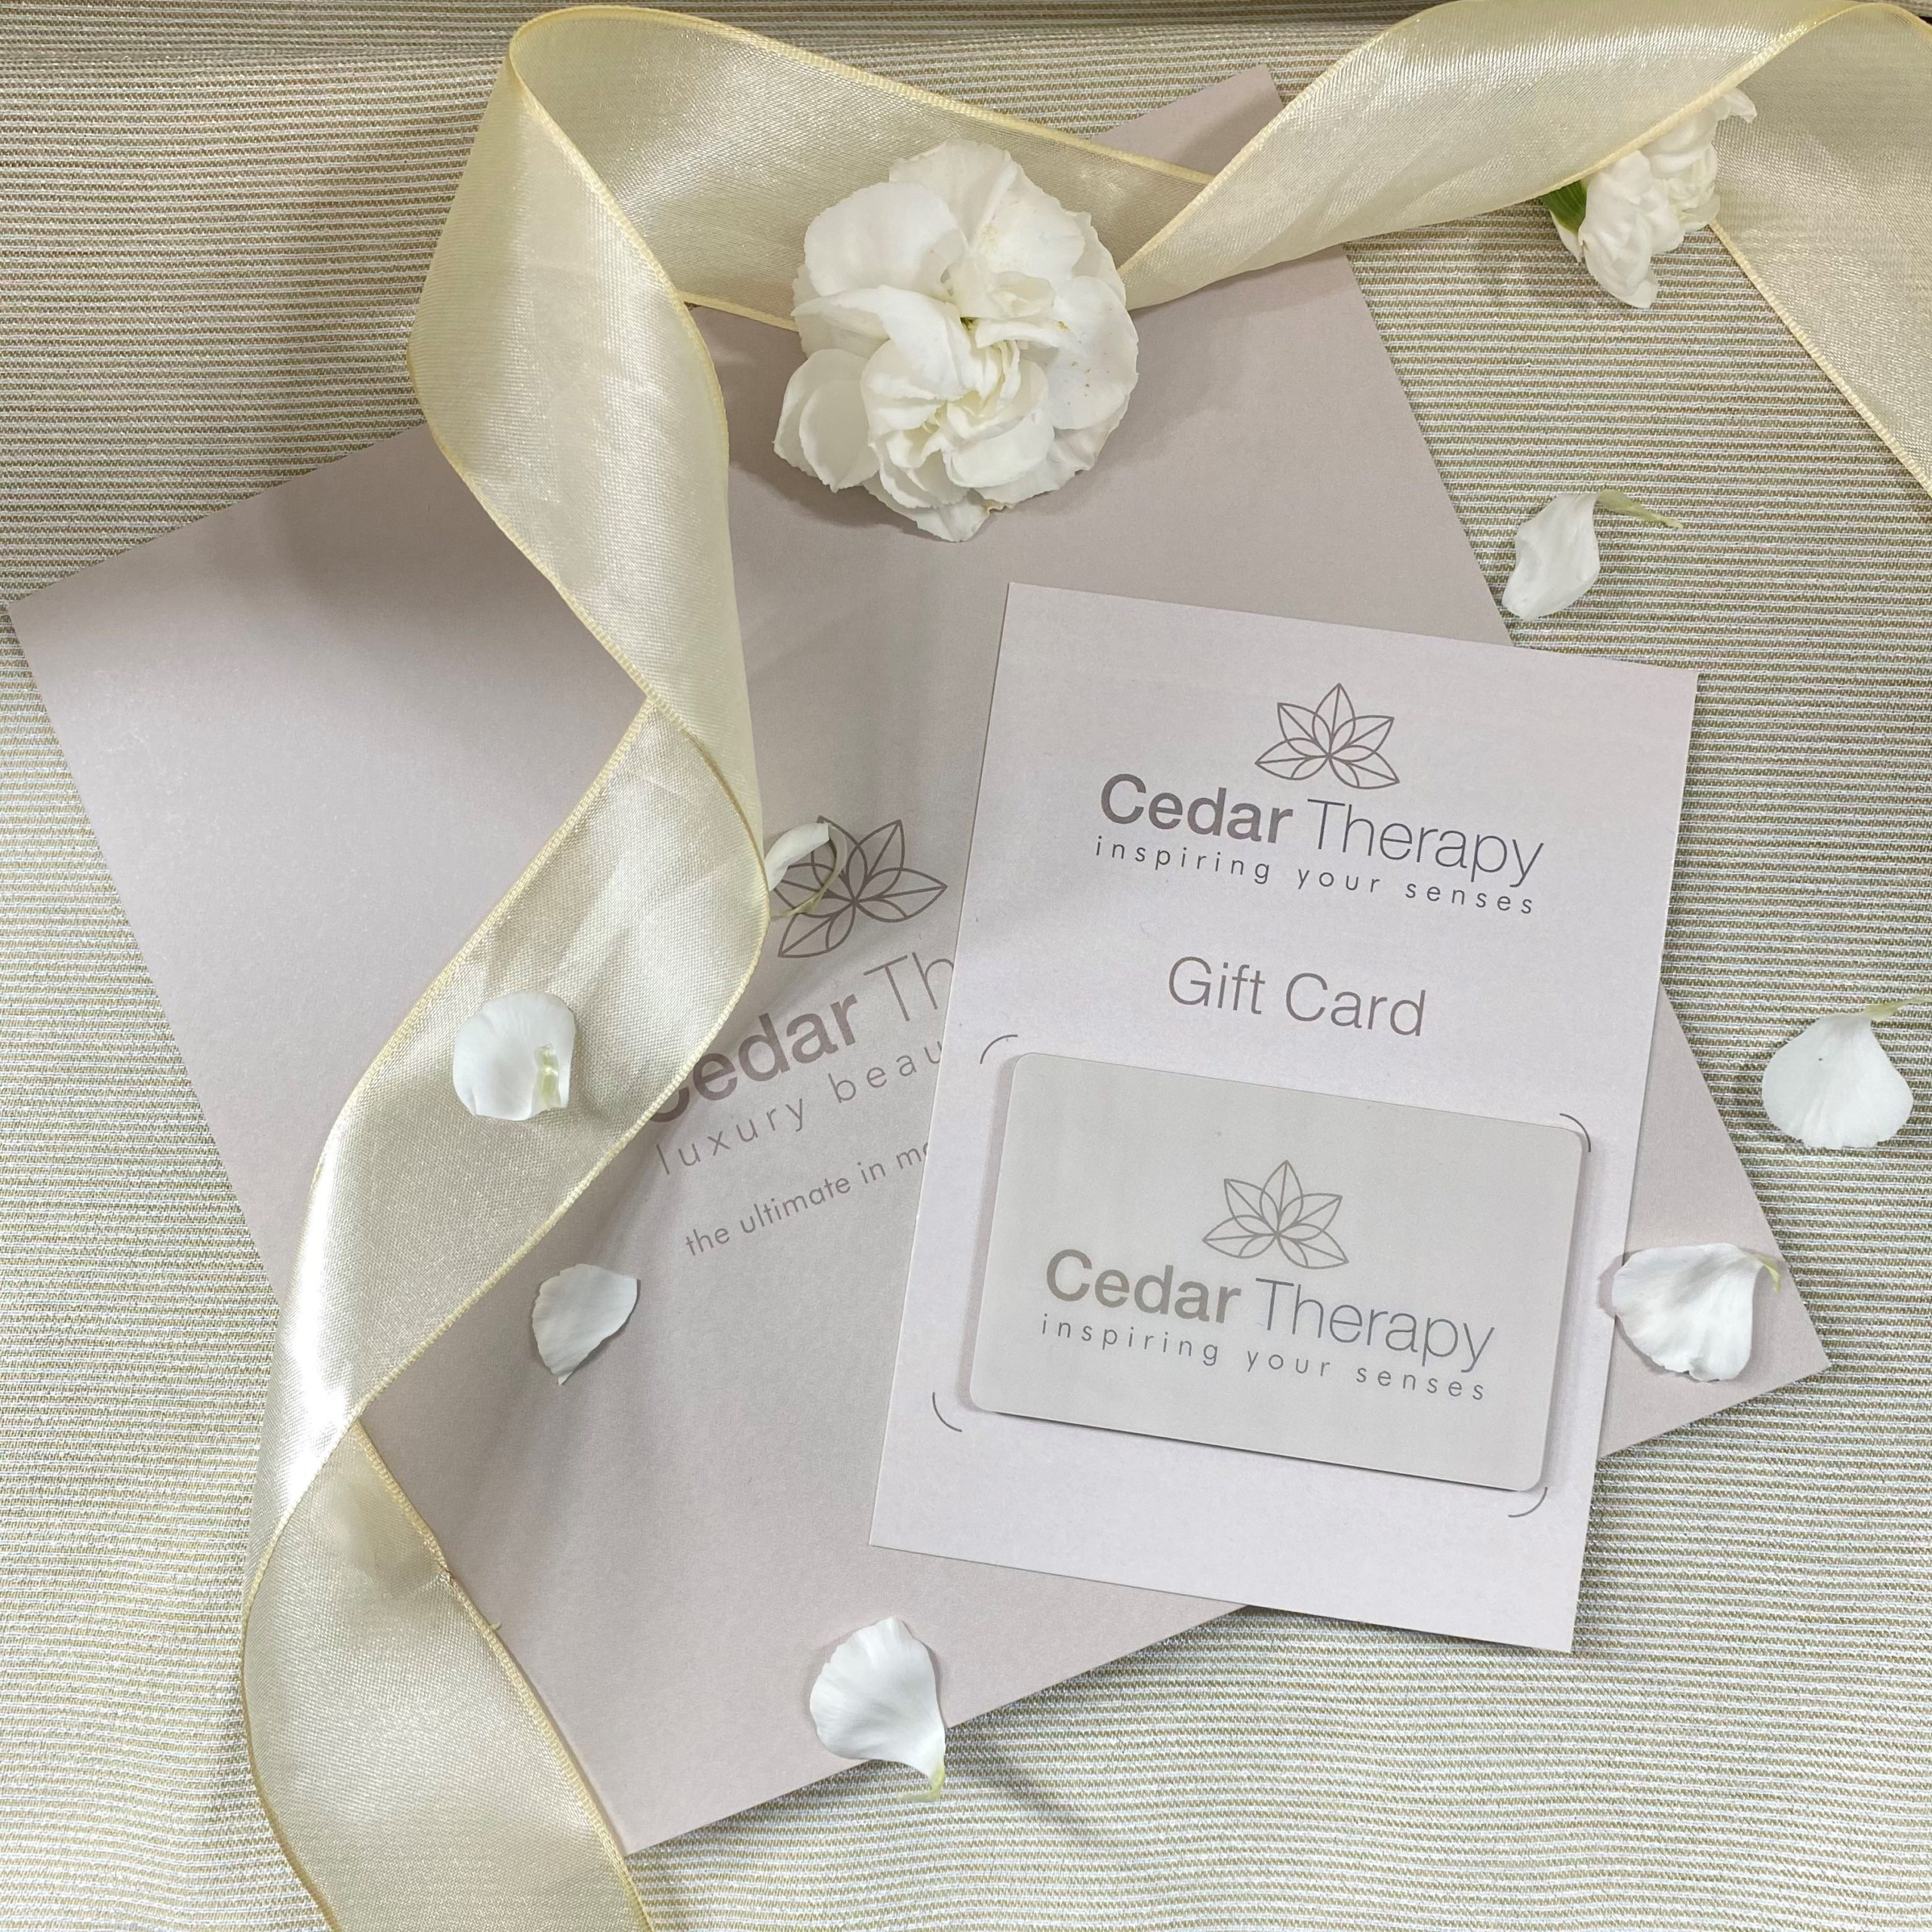 Basket for Gift Certificates at Cedar Therapy Luxury Beauty Salons